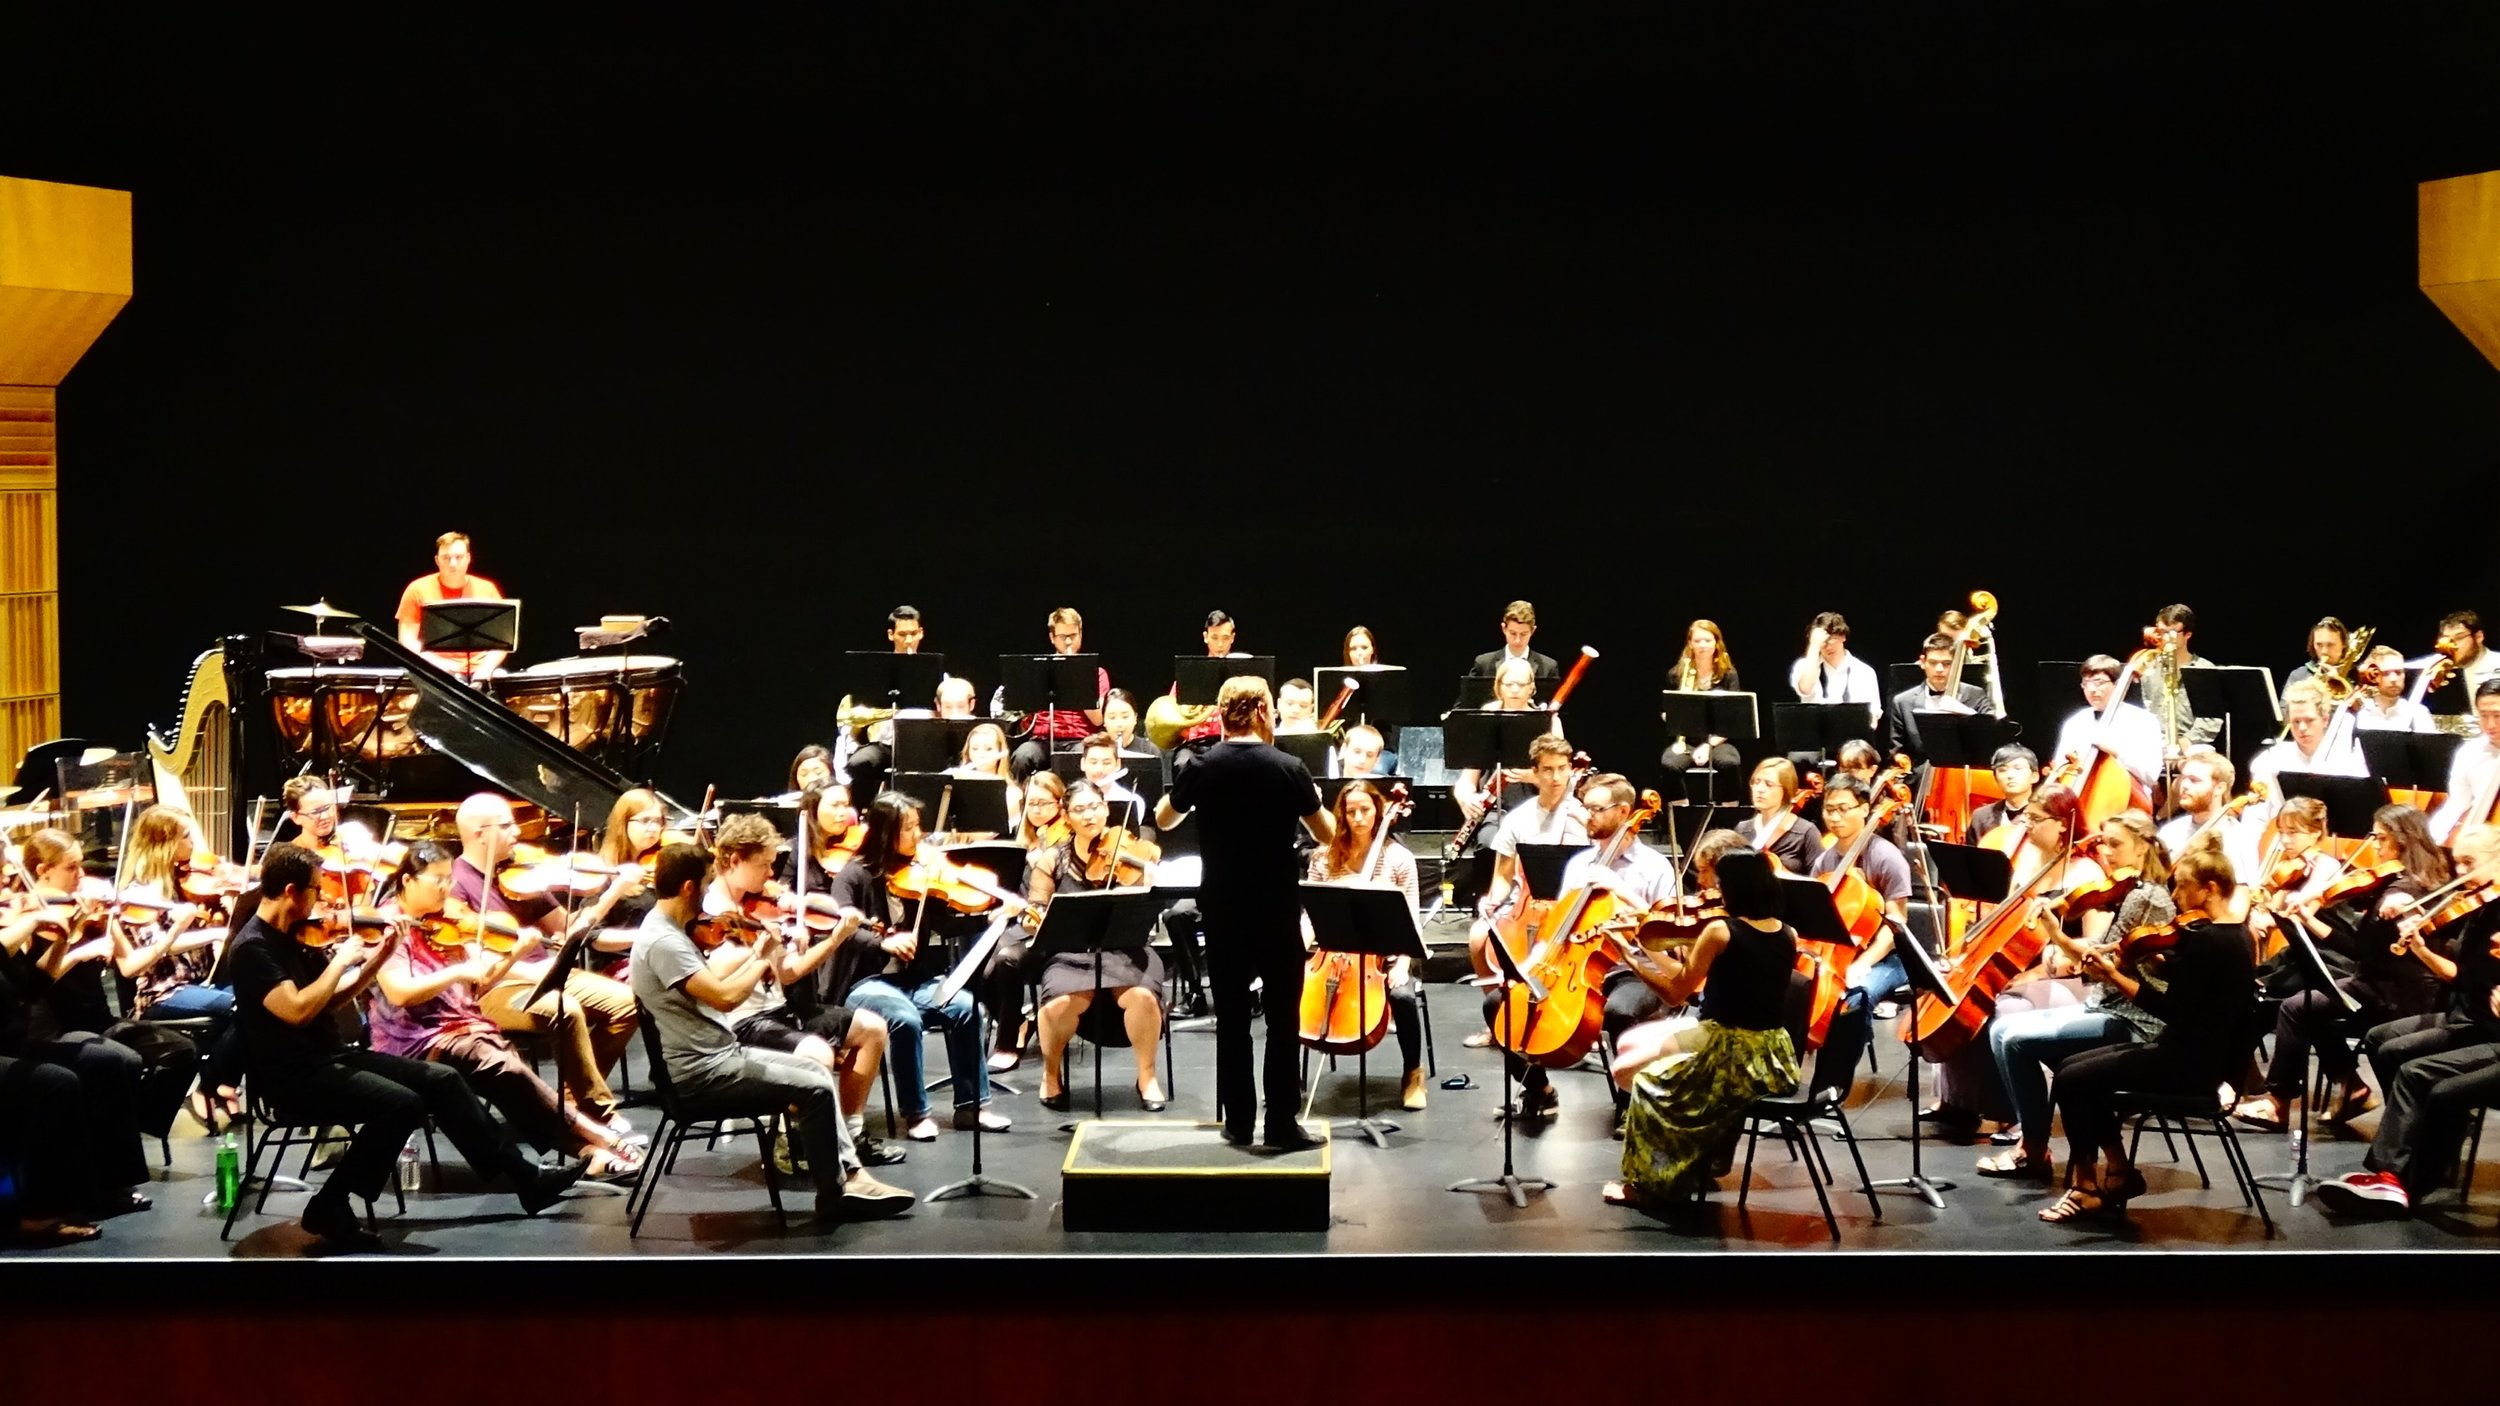 - One of the nation's top performance settings for early professional and pre-professional musicians